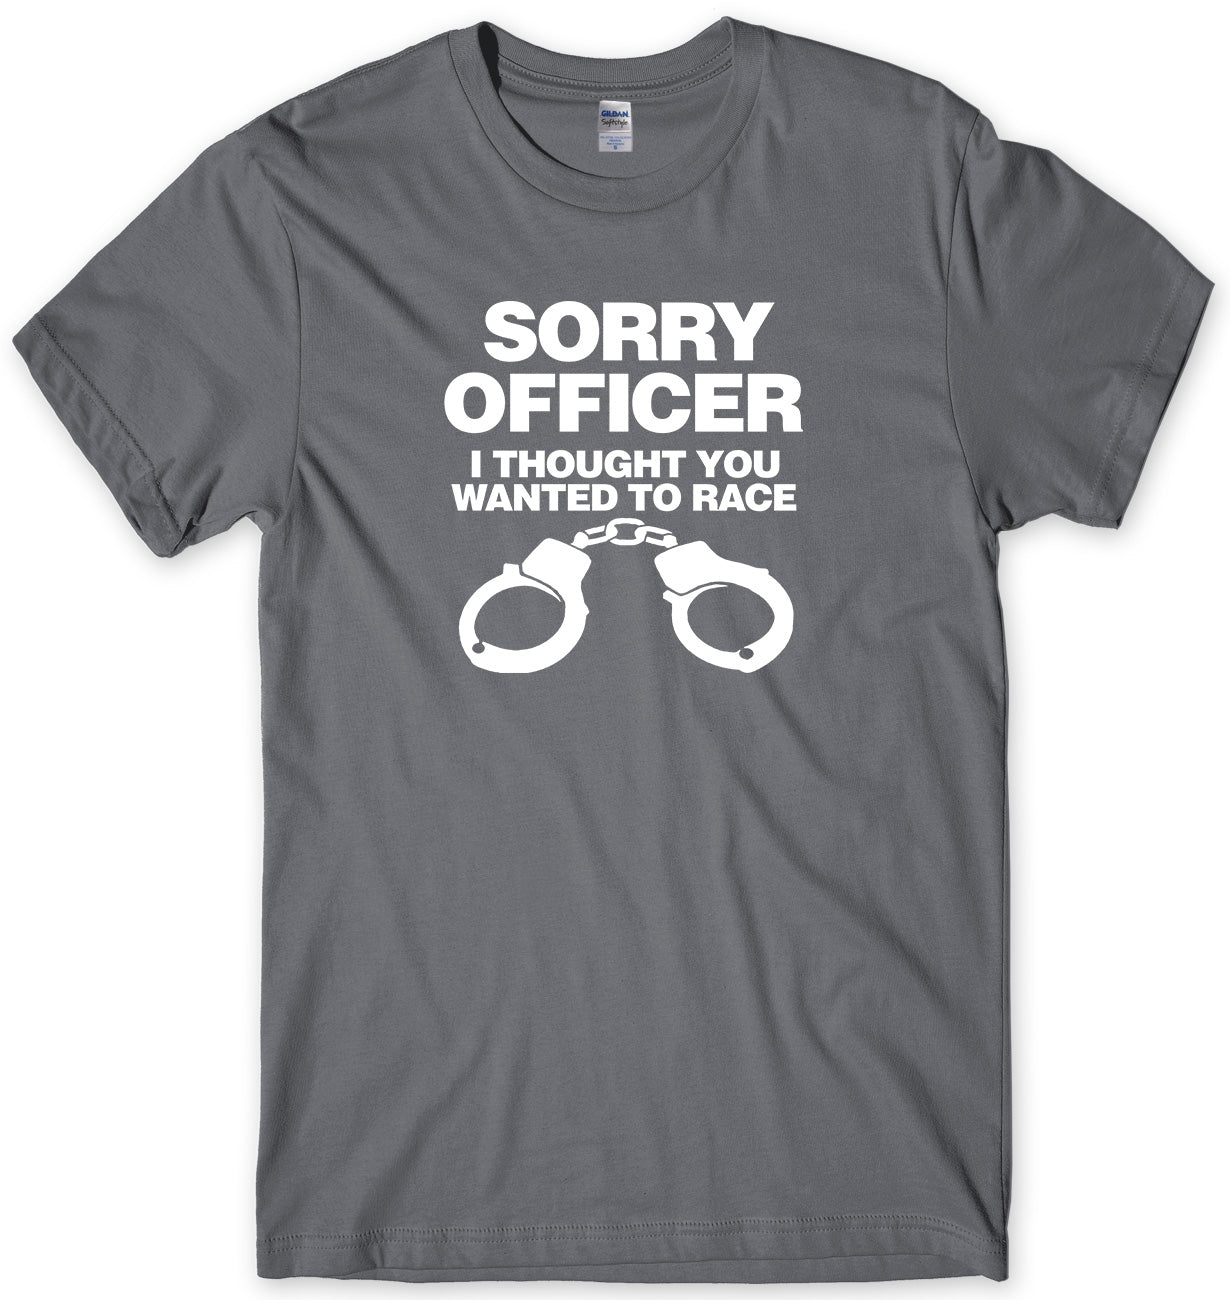 SORRY OFFICER I THOUGHT YOU WANTED TO RACE MENS FUNNY UNISEX T-SHIRT